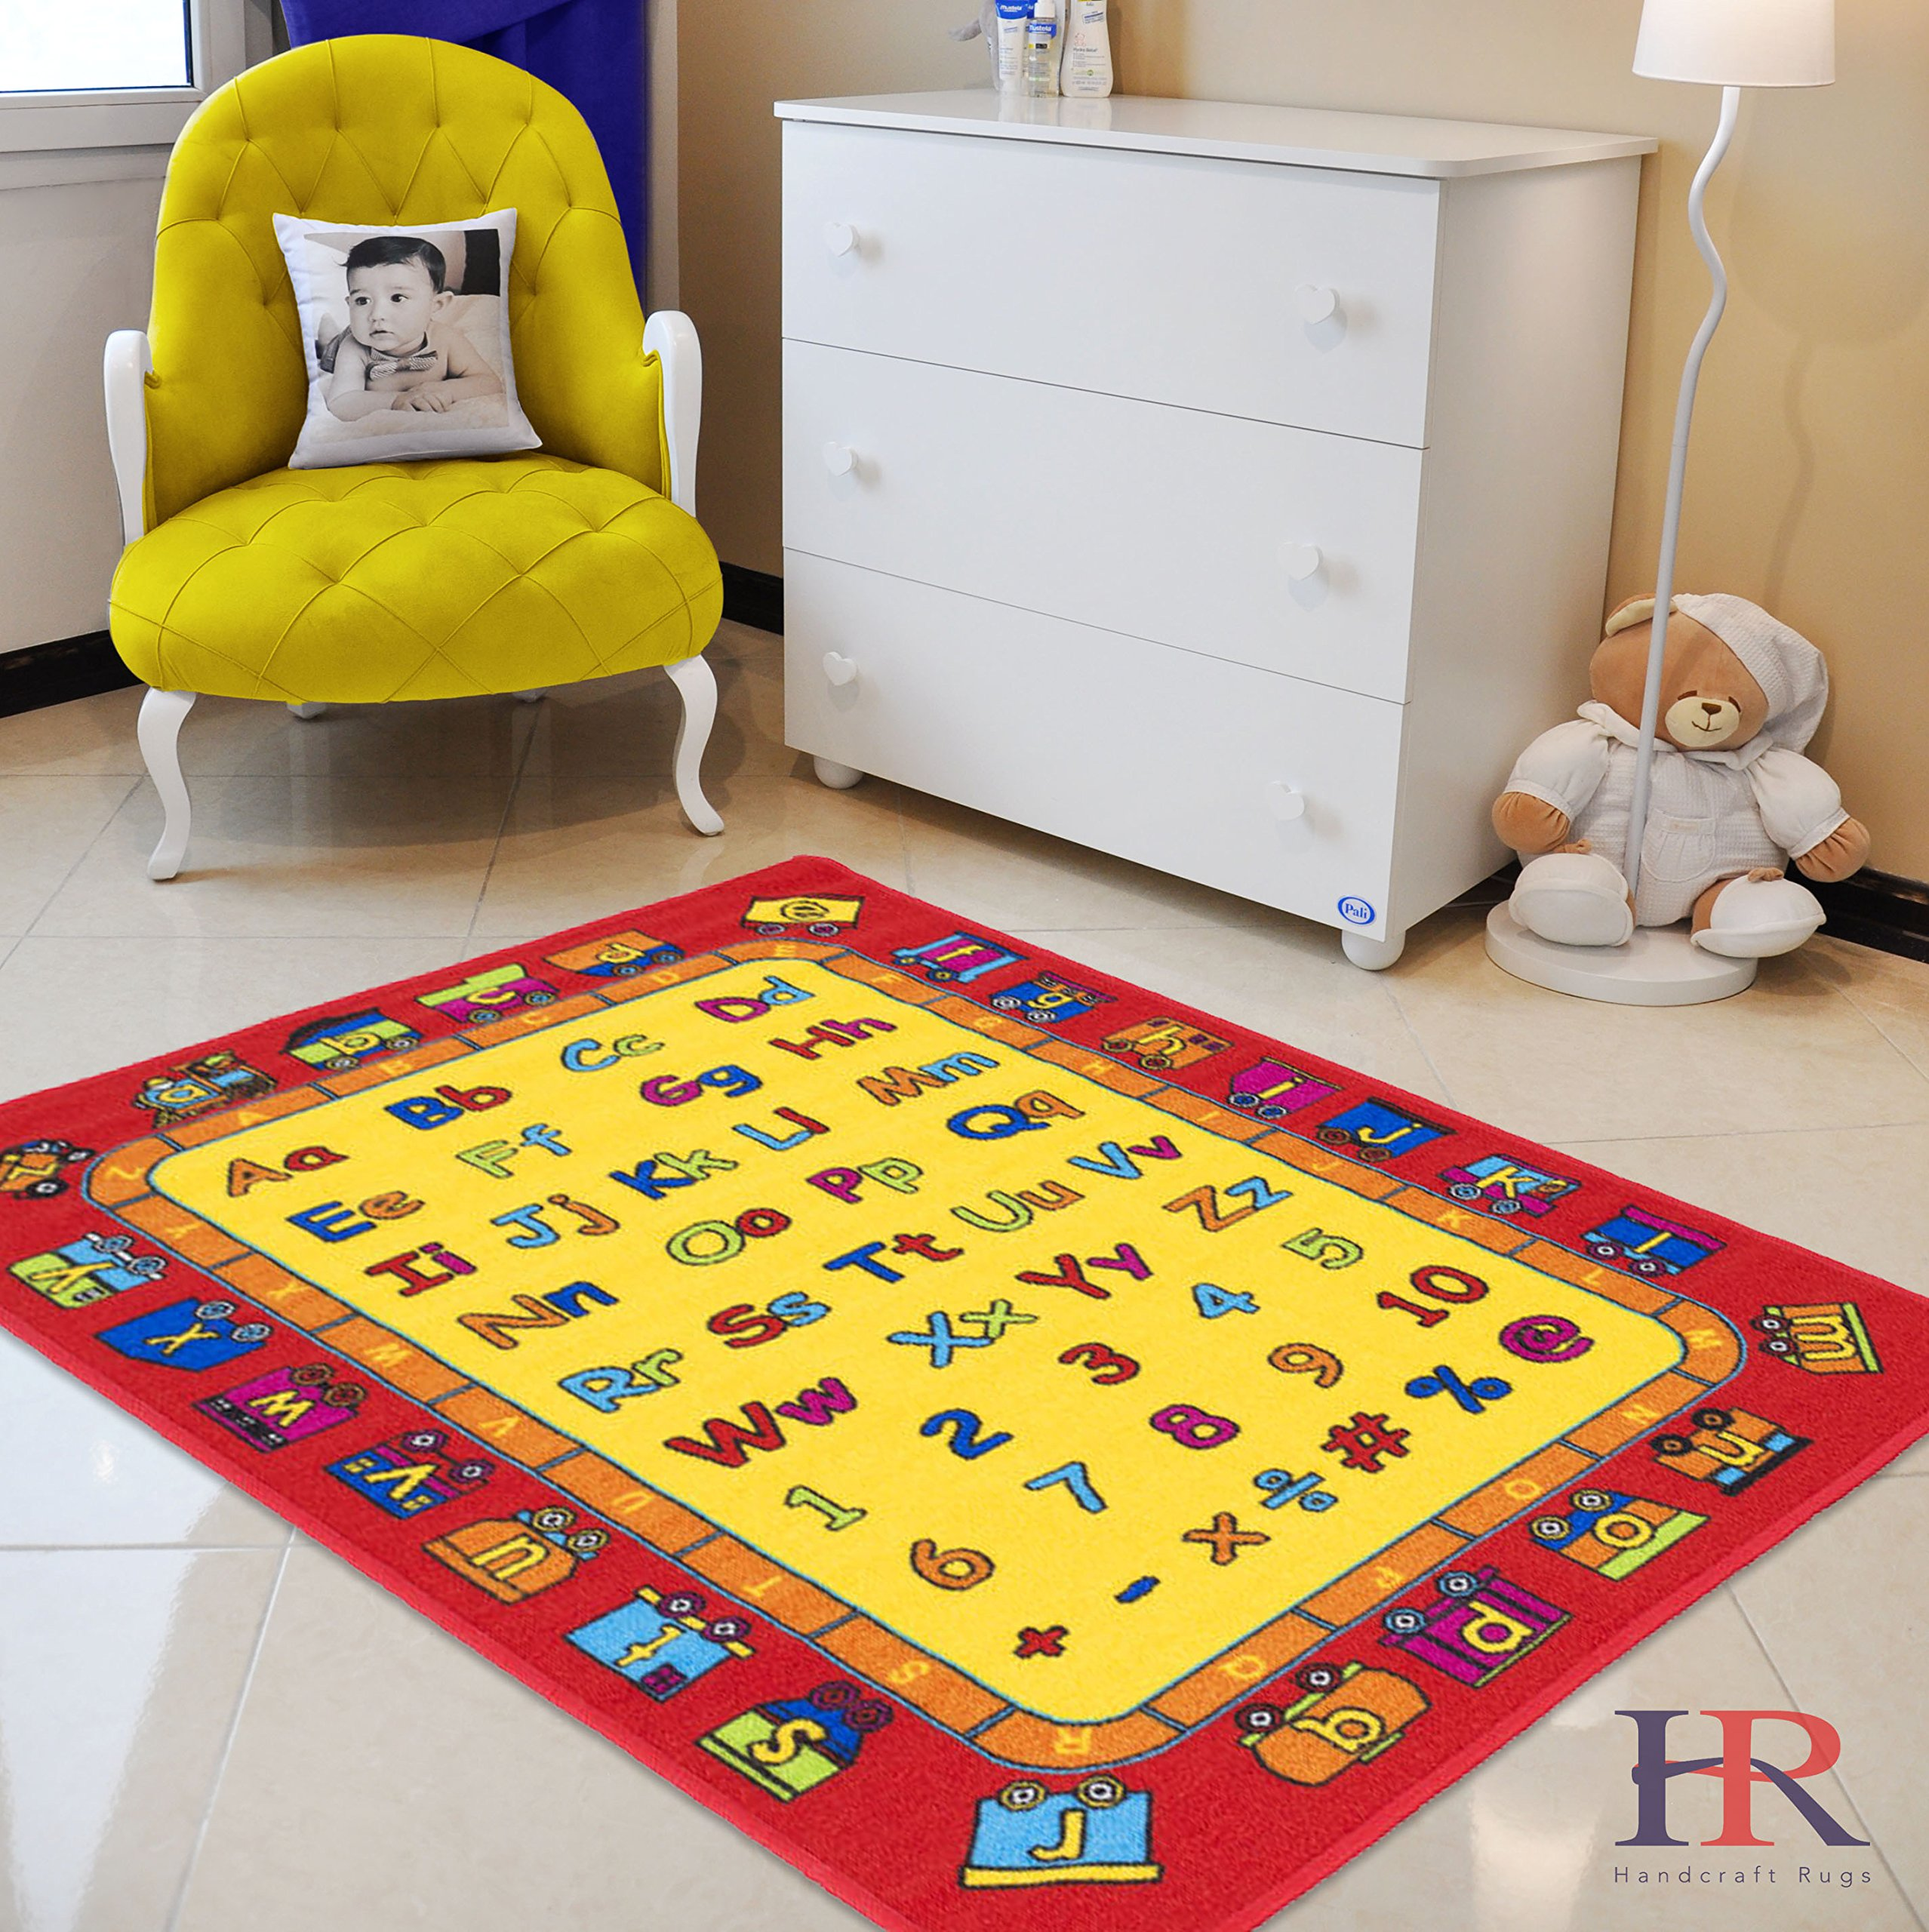 Carpets For Classrooms For Toddlers: Preschool Rugs For Classroom: Amazon.com